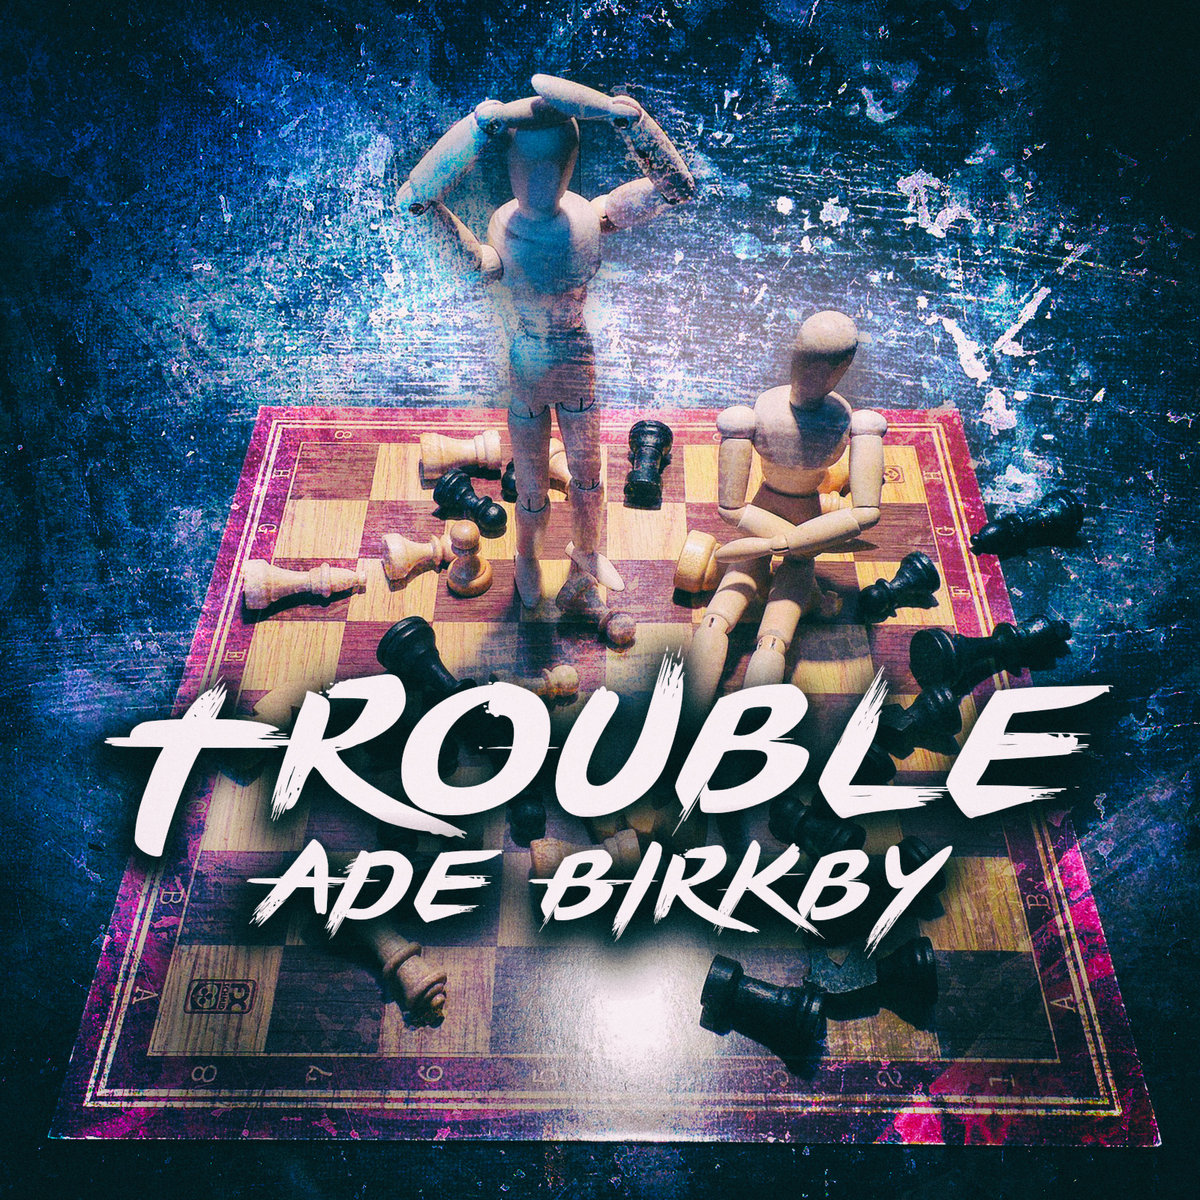 Trouble by Ade Birkby